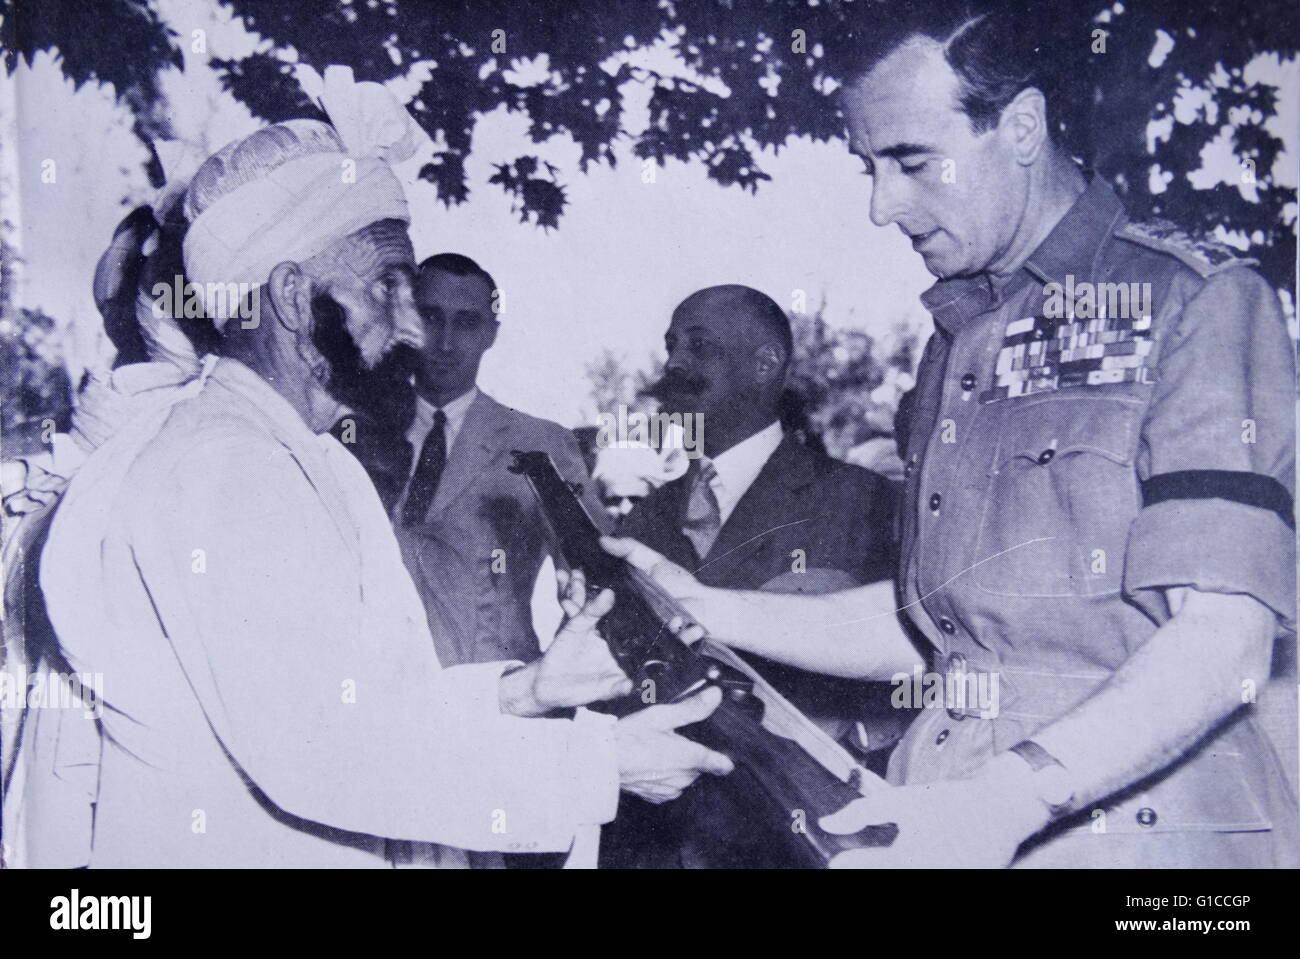 Viceroy of India, lord Mountbatten presented with a rifle 1947 - Stock Image